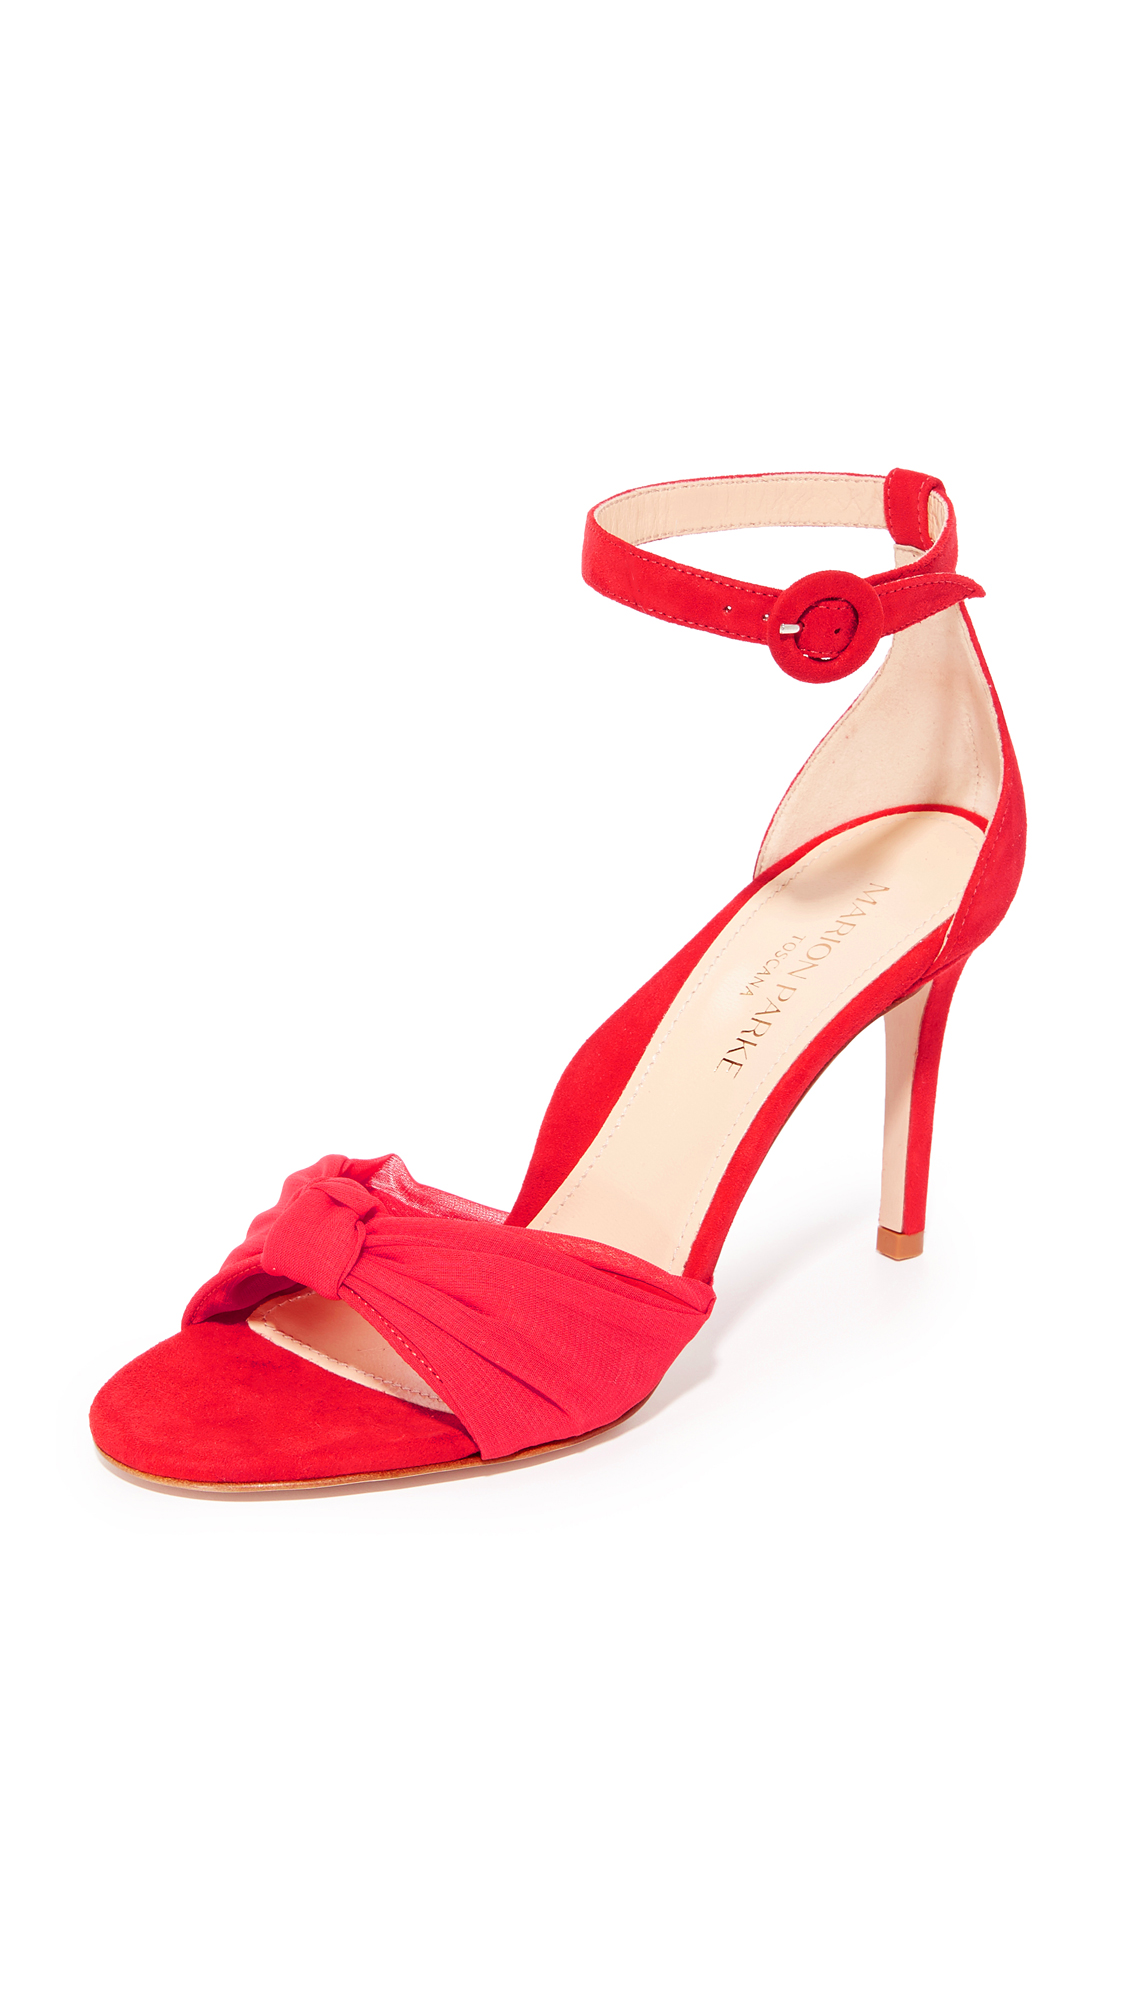 marion parke female marion parke lane wrap sandals red lip